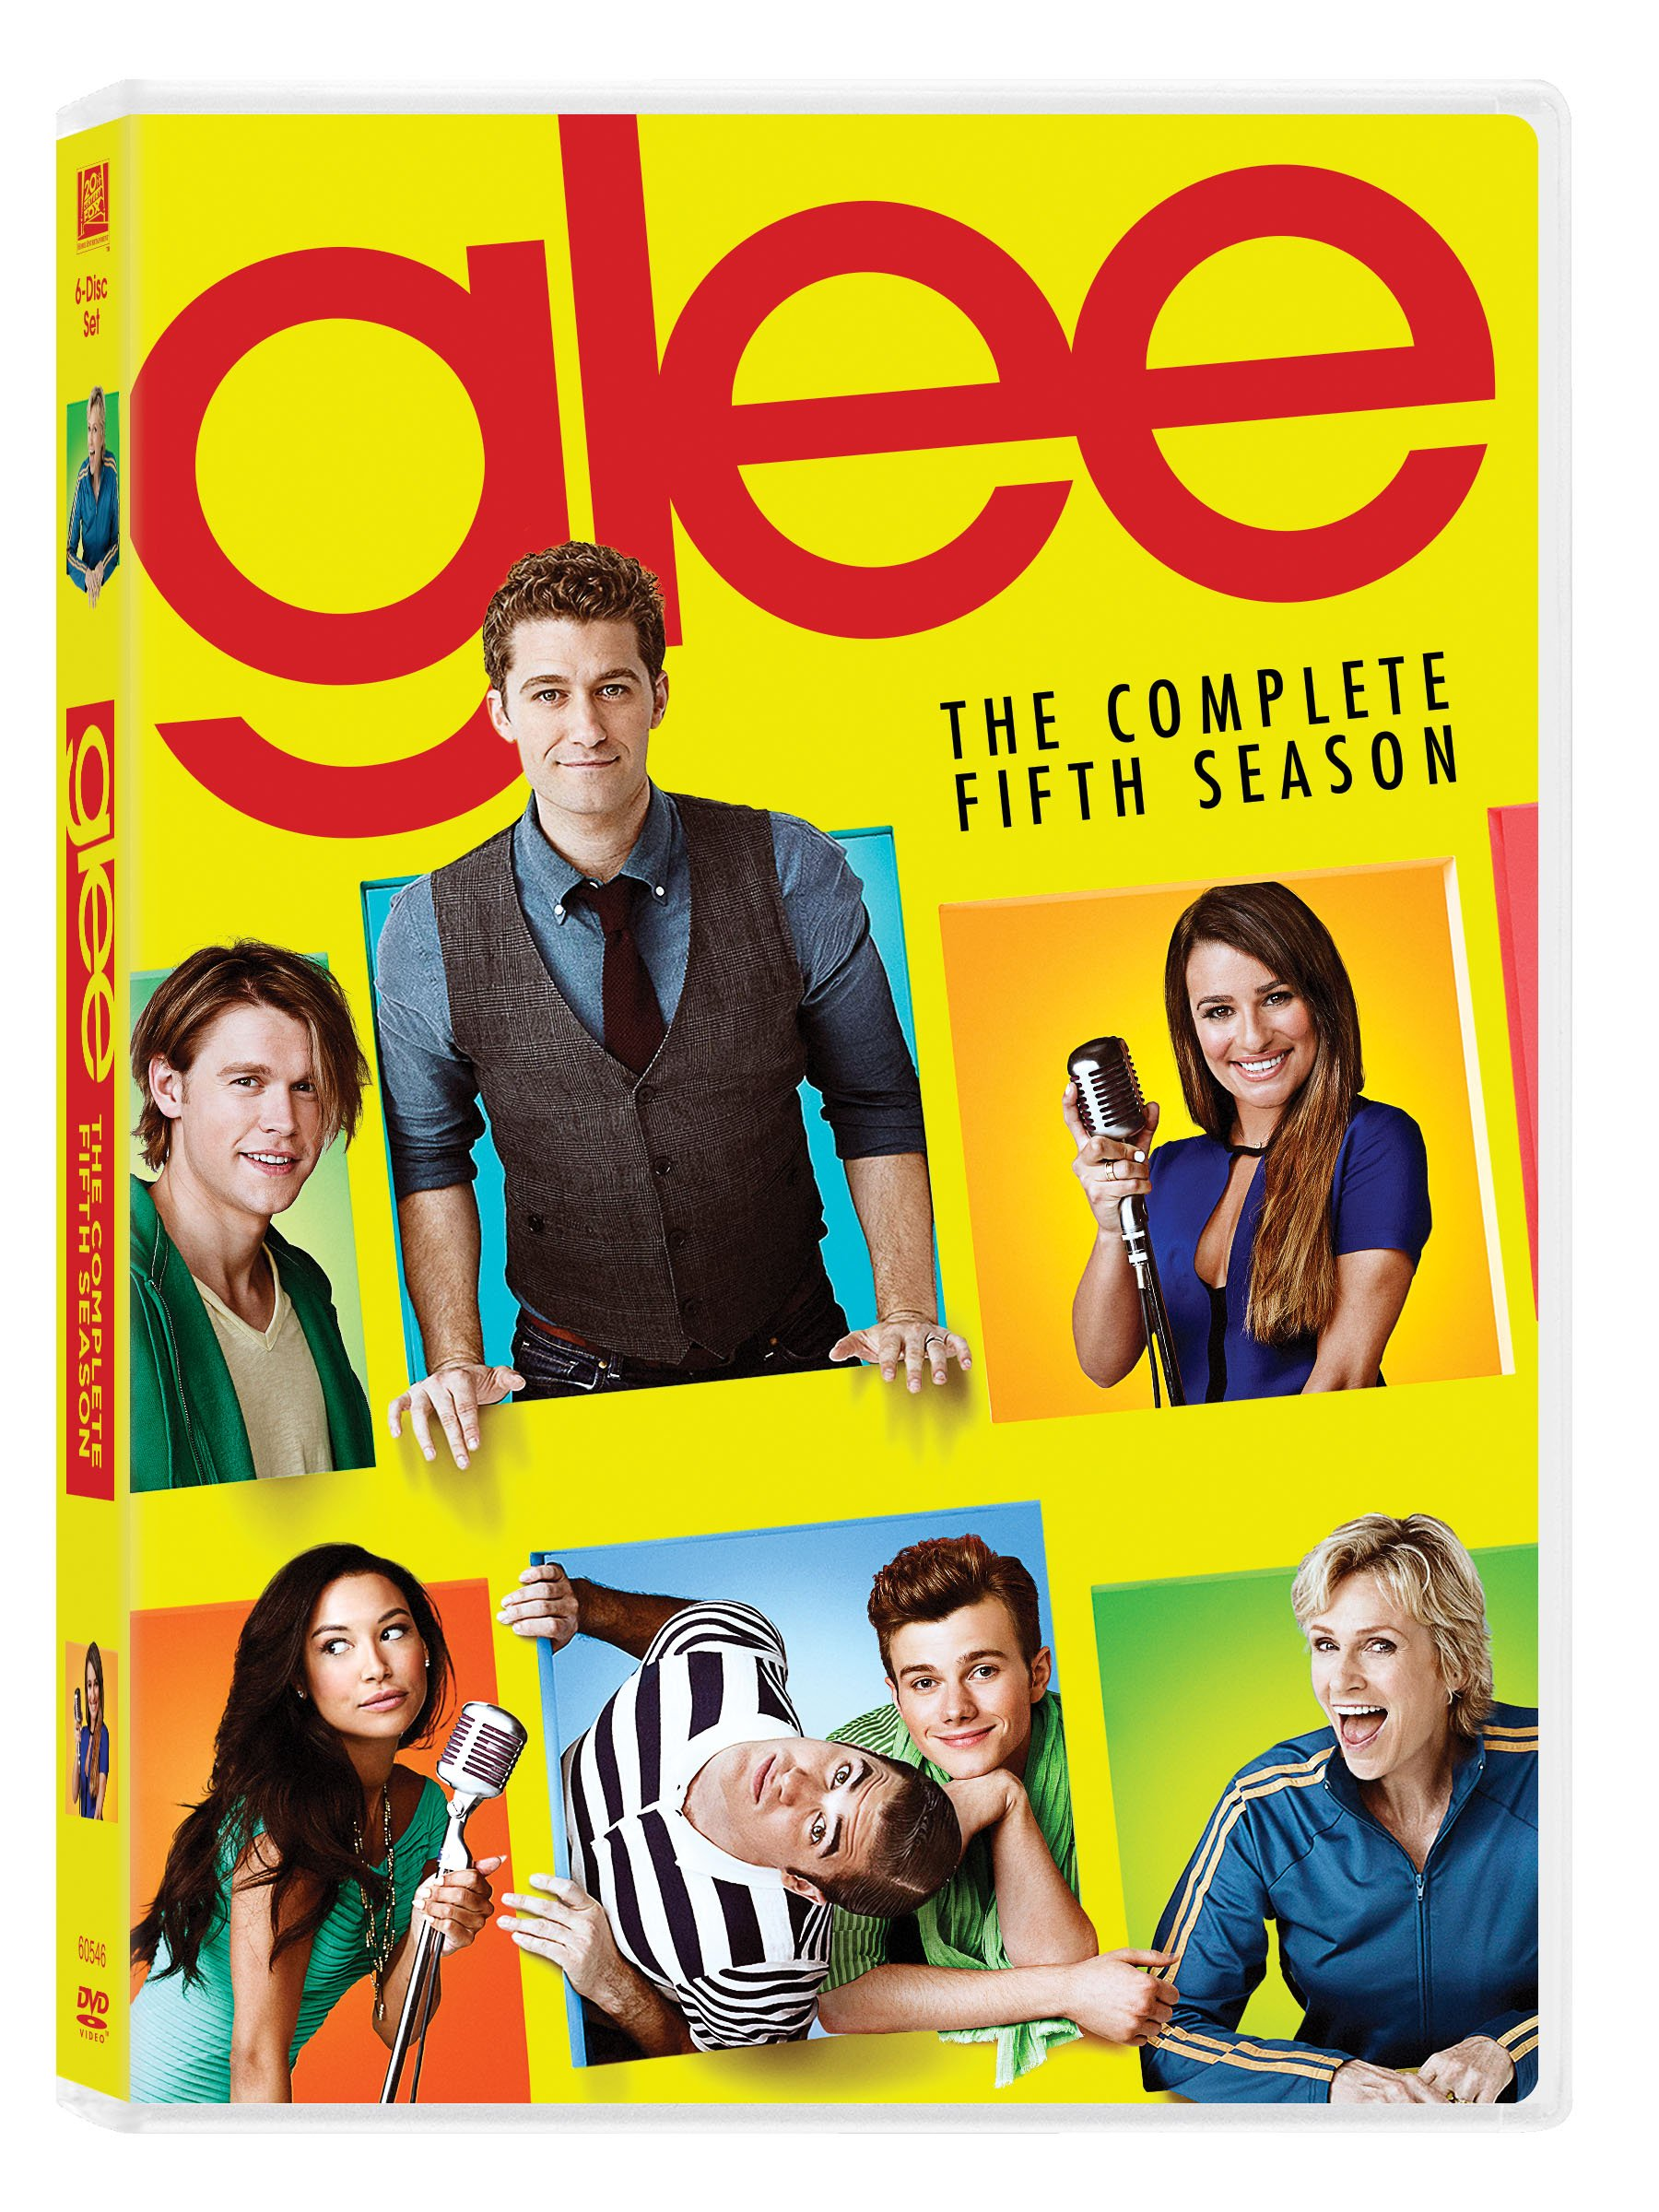 DVD : Glee: Season 5 (Dolby, Digital Theater System, , Widescreen, 6 Disc)